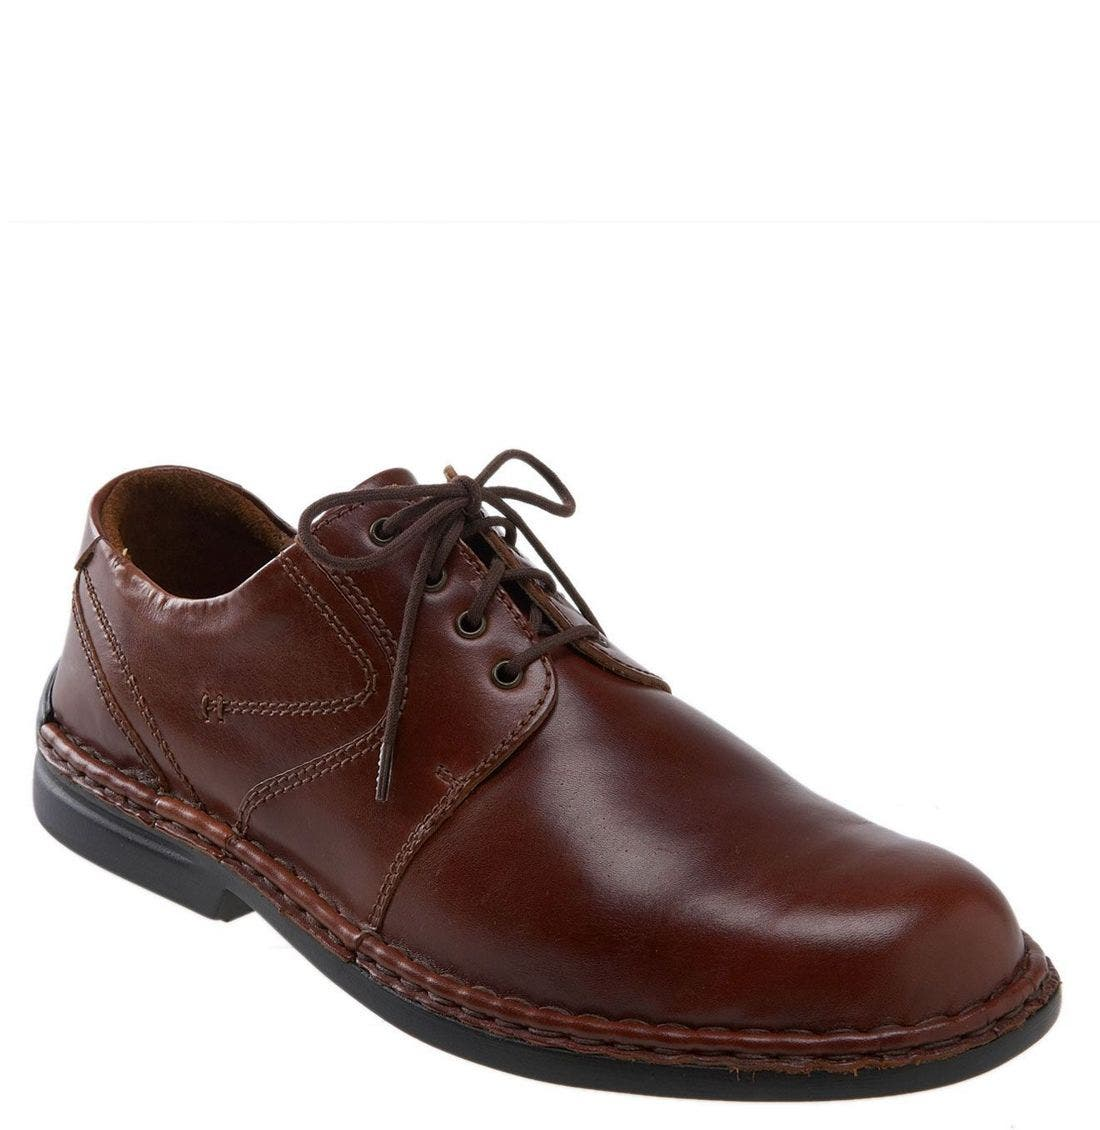 Alternate Image 1 Selected - Josef Seibel 'Walt' Casual Oxford